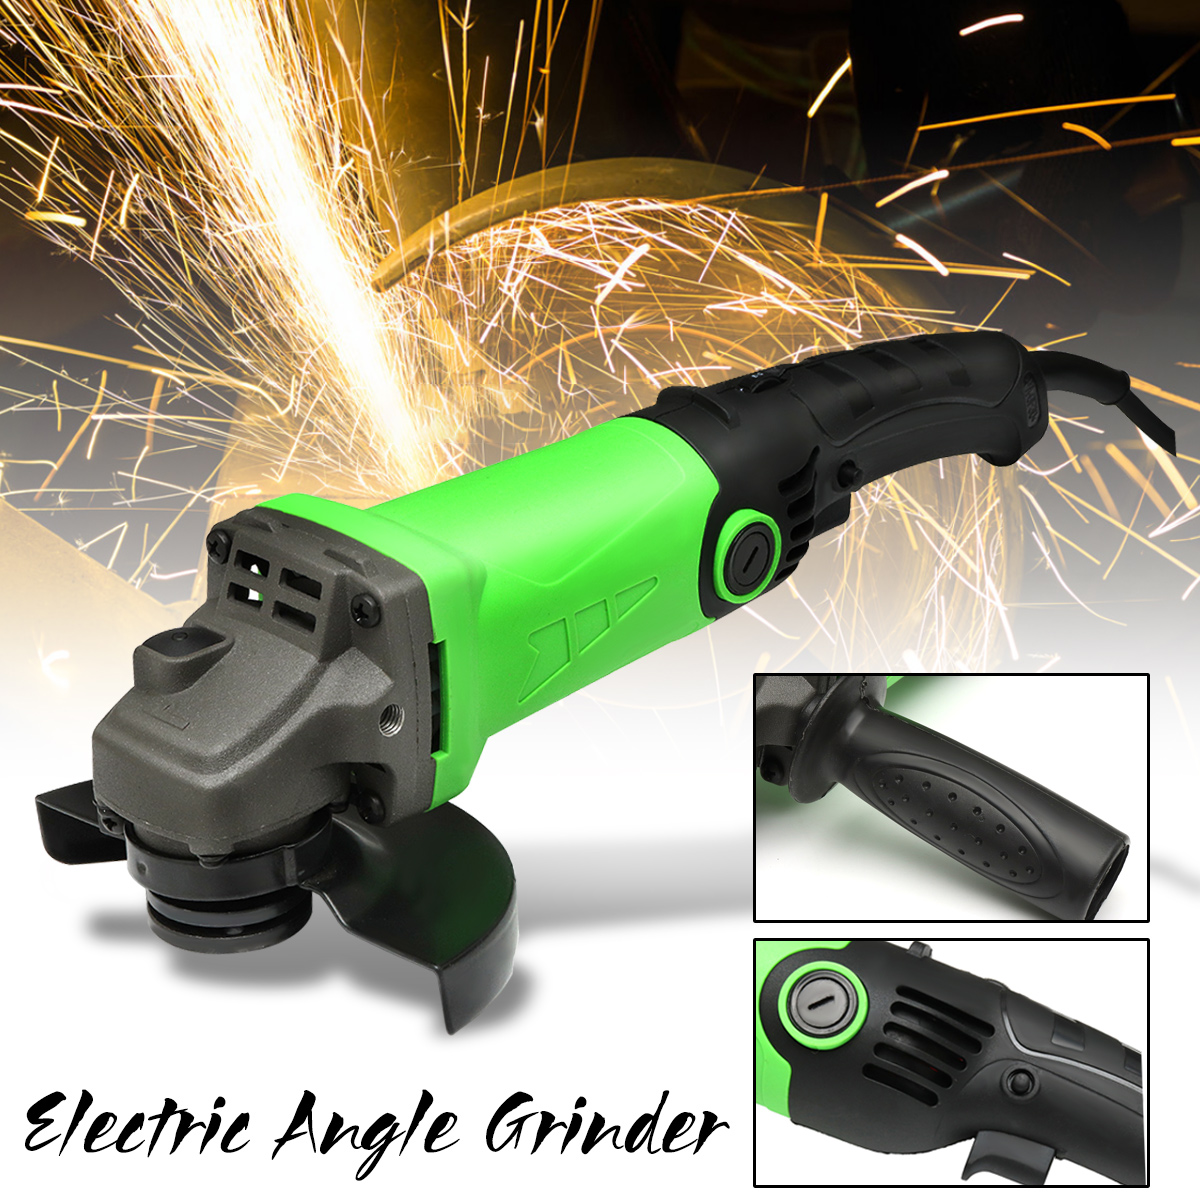 1Pcs 1200W Multi-function Angle Grinder 6 Levels Speed Adjustable Polishing Machine Refit Angle Grind Grinding Drilling Tools